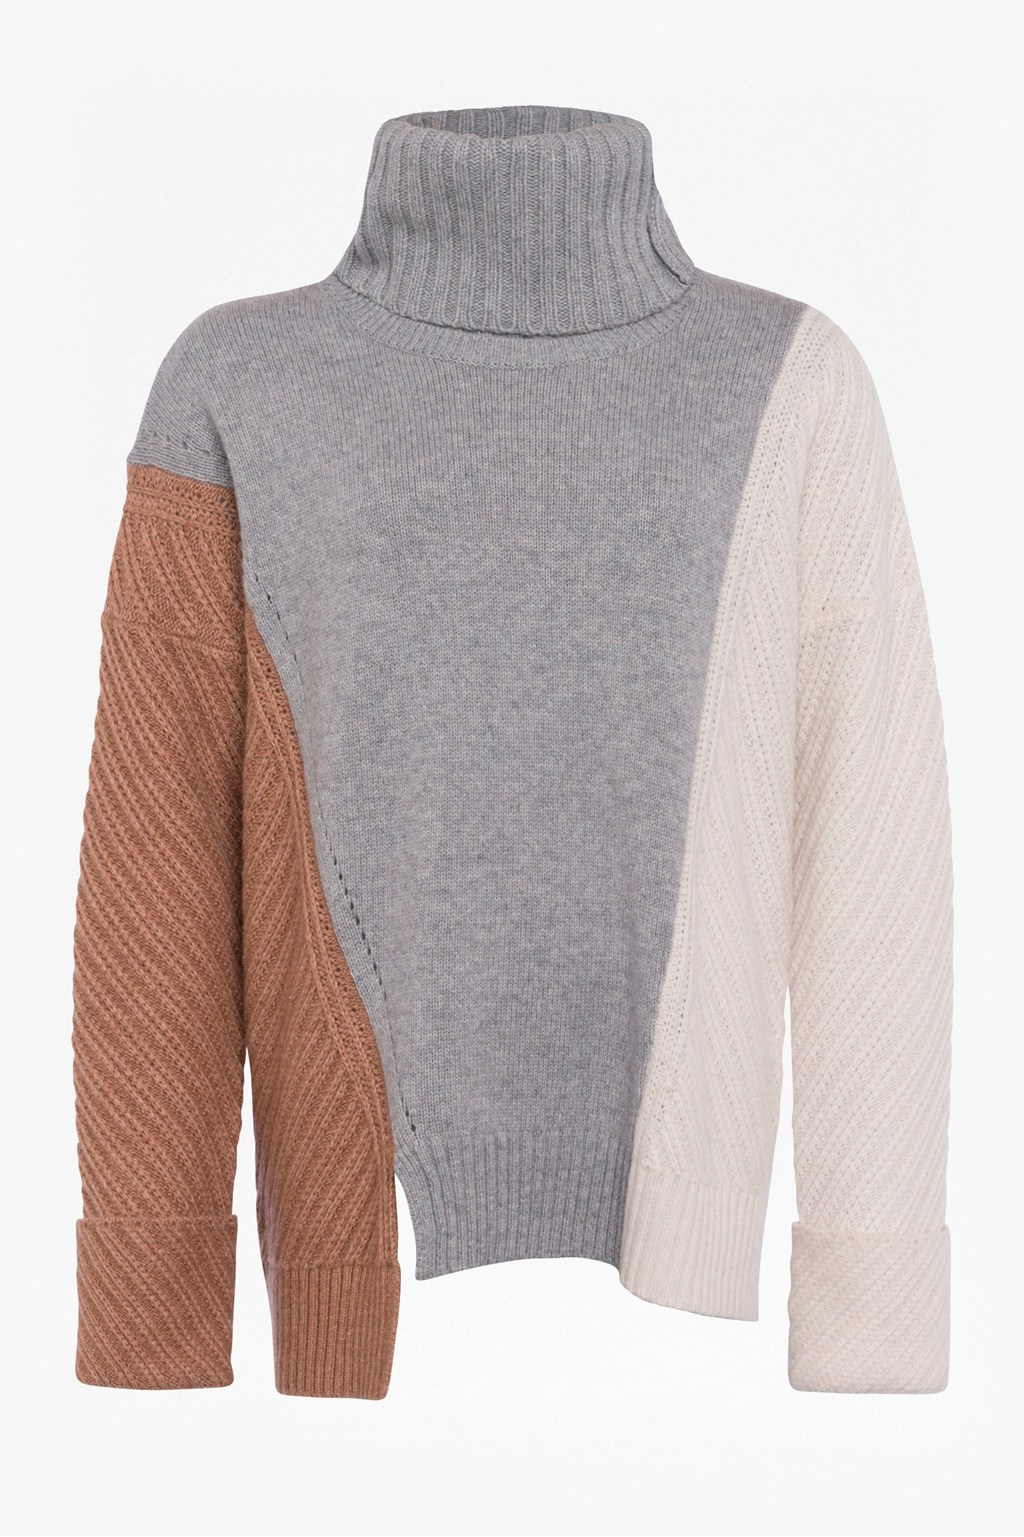 edaf7ad3e6 Viola Knit High Neck Jumper. loading images.